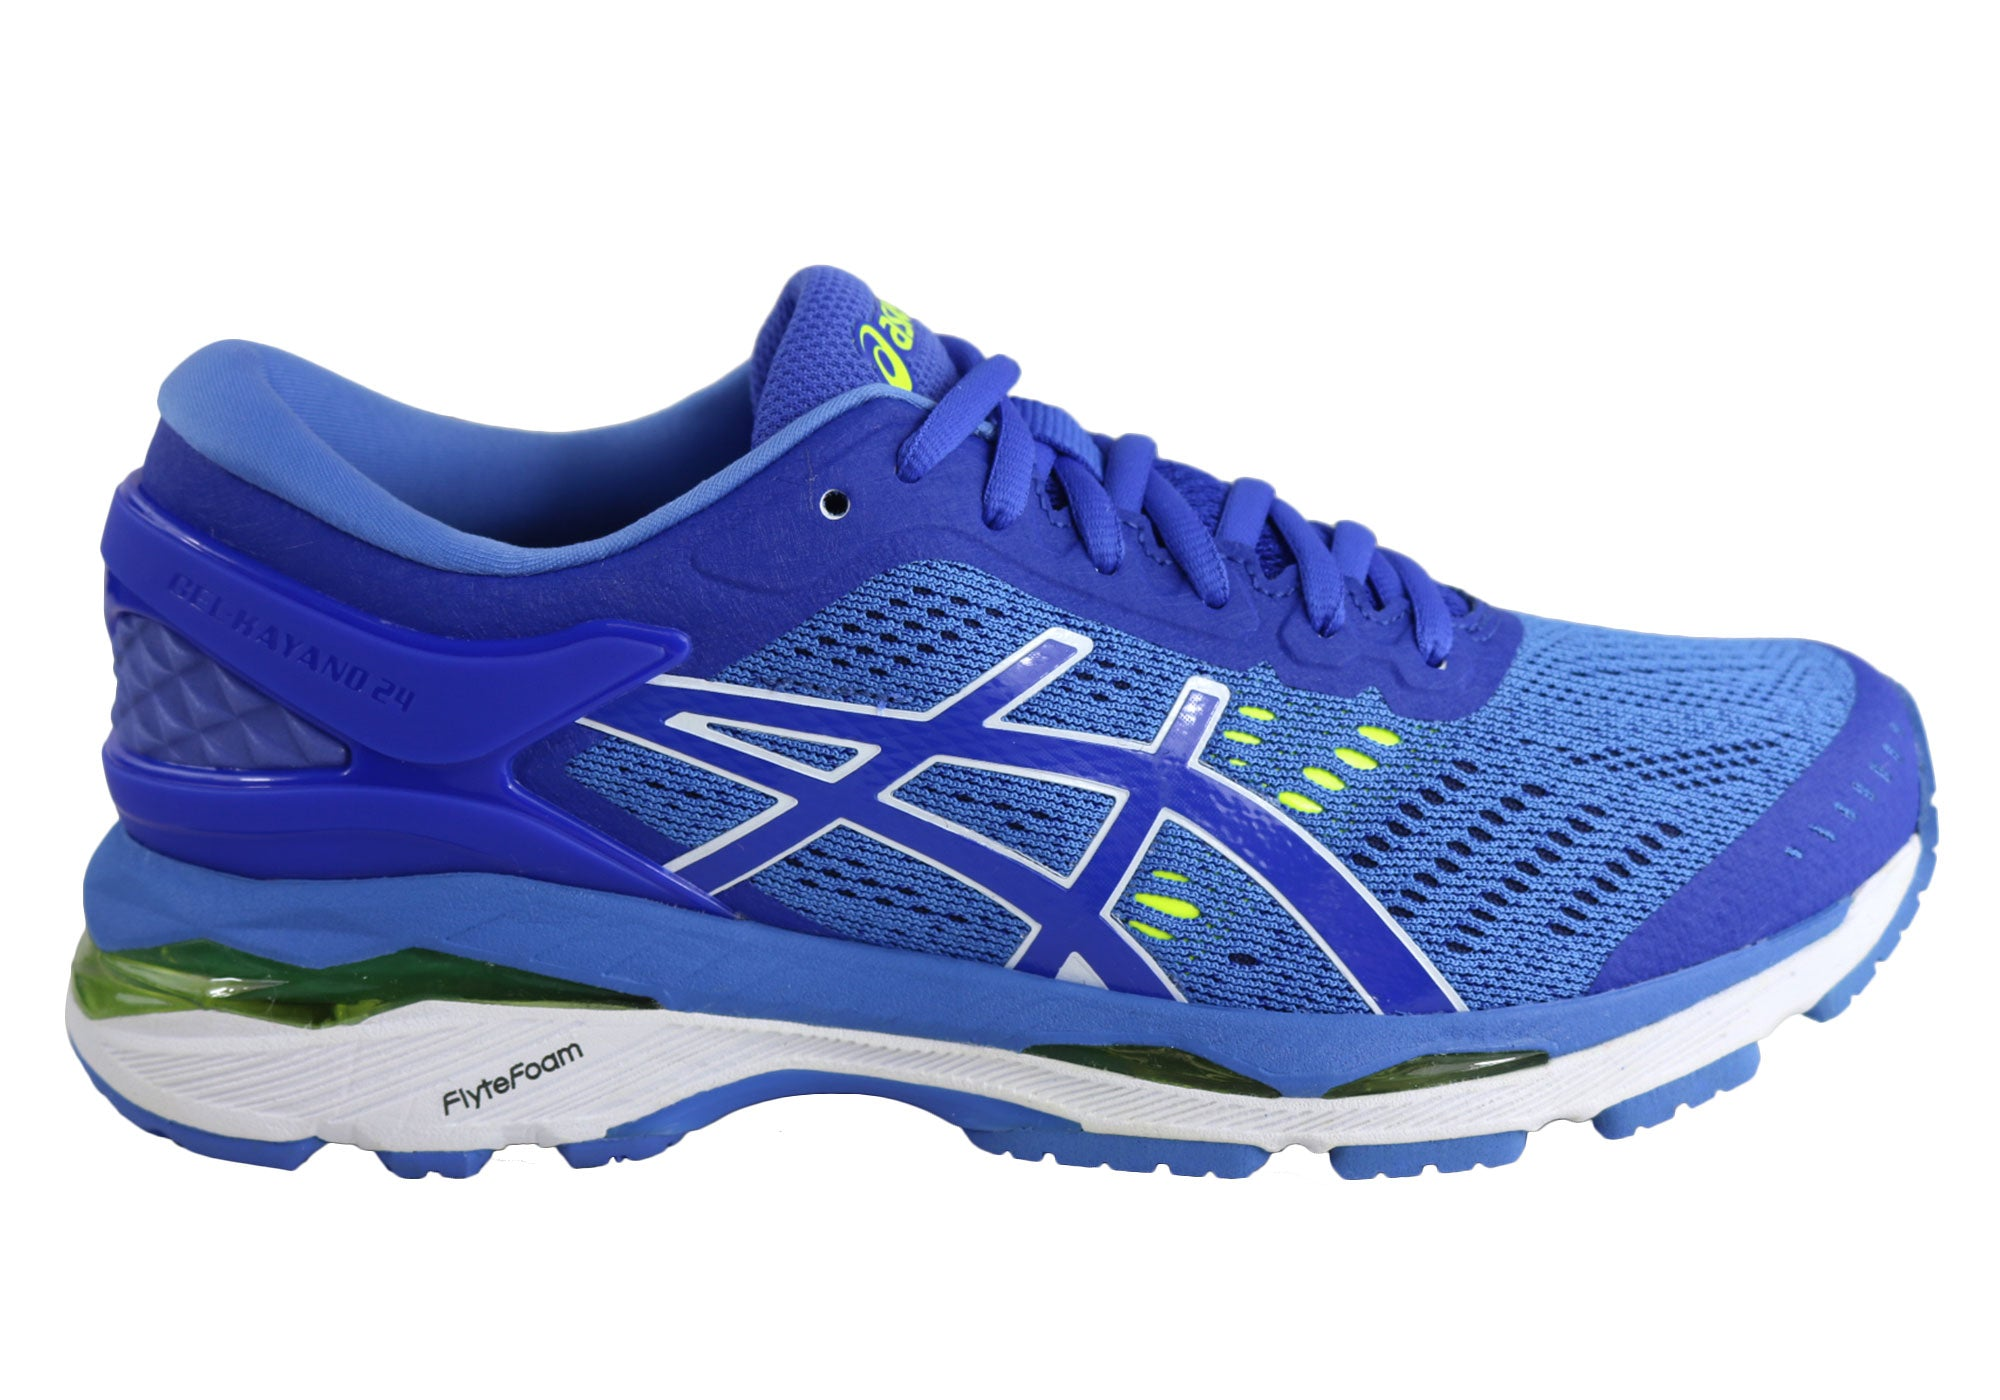 new product 72392 8d5f9 Asics Gel-Kayano 24 Womens Premium Cushioned Running Sport Shoes Wide D  Width